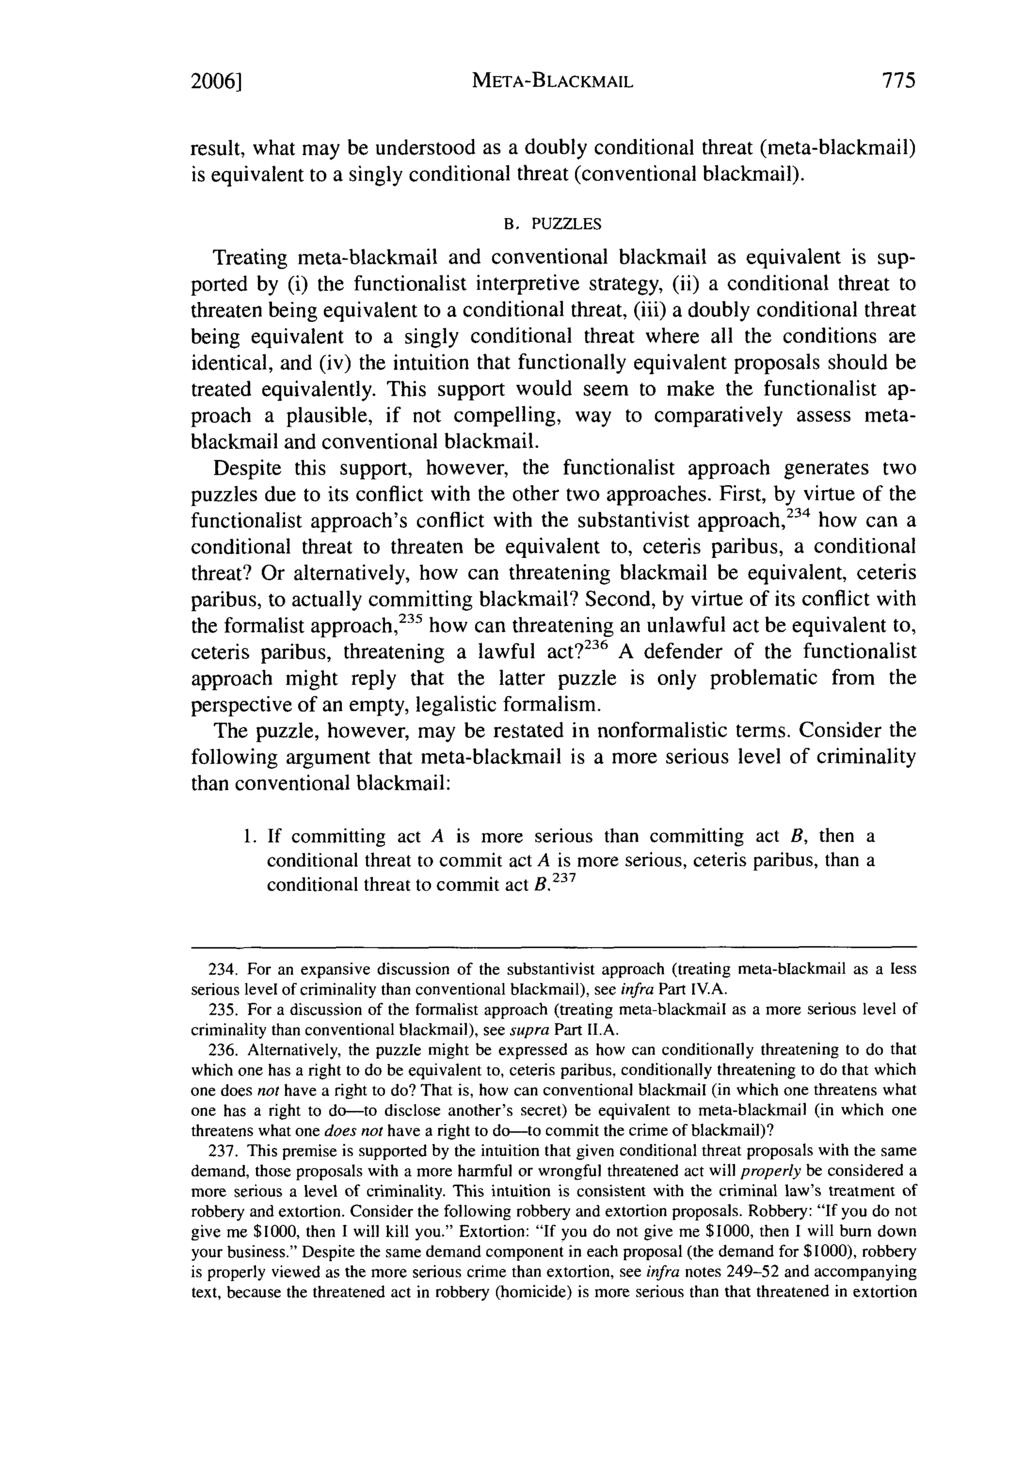 2006] META-BLACKMAIL result, what may be understood as a doubly conditional threat (meta-blackmail) is equivalent to a singly conditional threat (conventional blackmail). B.